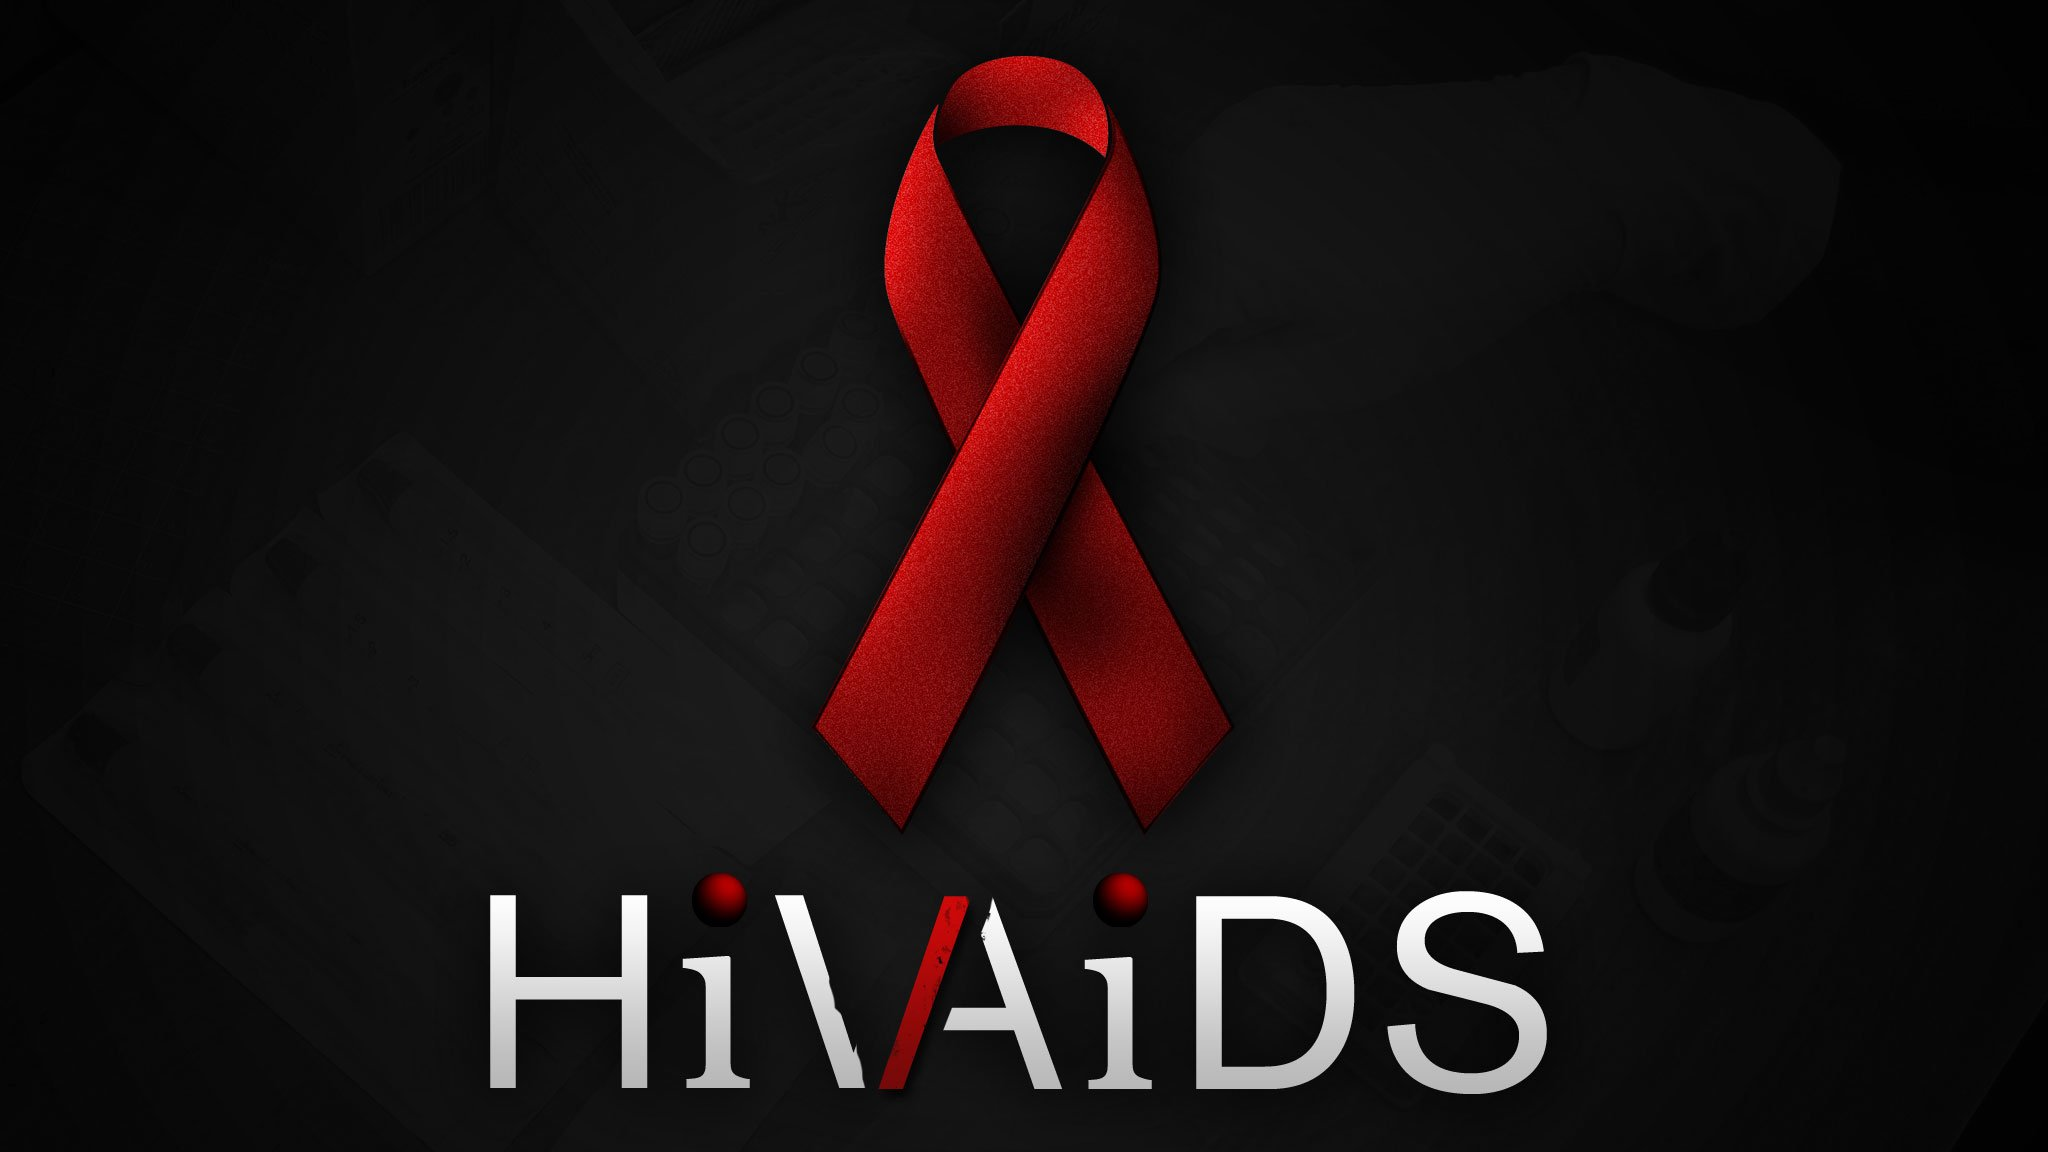 HIV/AIDS: More than 20 teen girls infected every hour – UNICEF